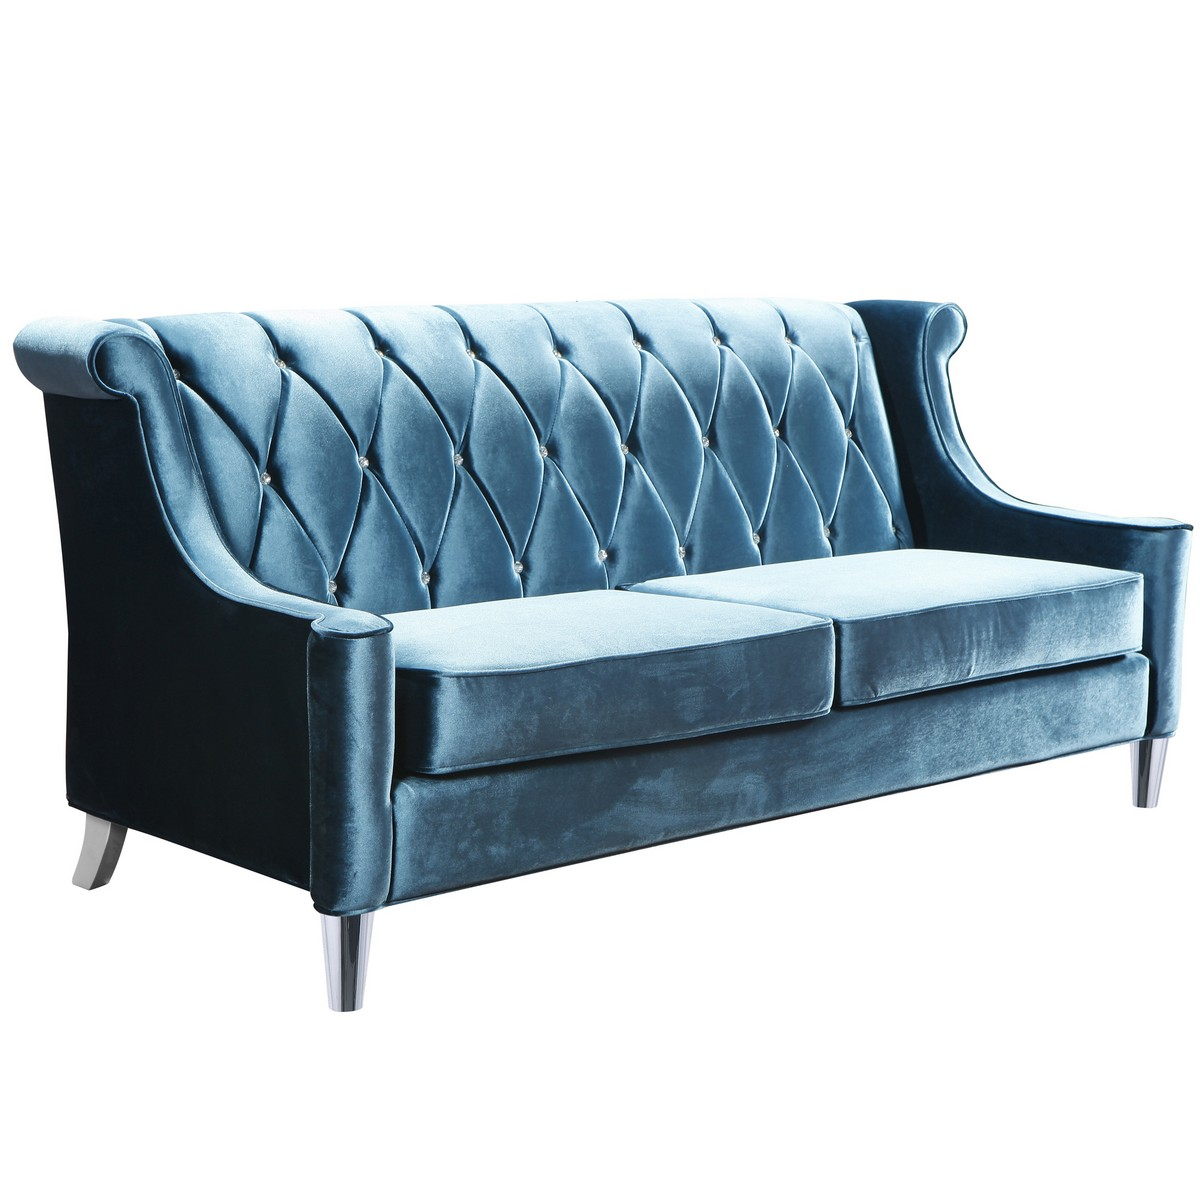 Ordinaire Armen Living Barrister Sofa In Blue Velvet With Crystal Buttons